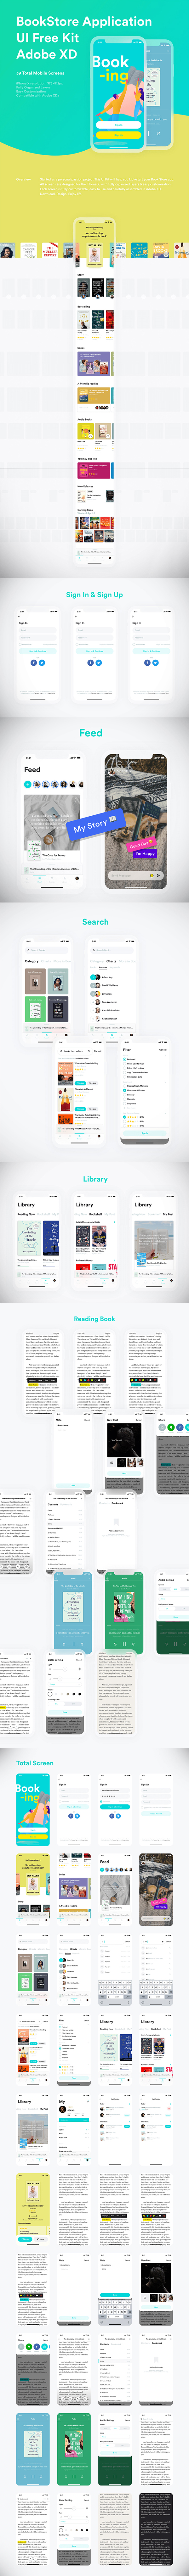 Freebie : Creative BookStore Application UI Kit (39 Mobile Screens)